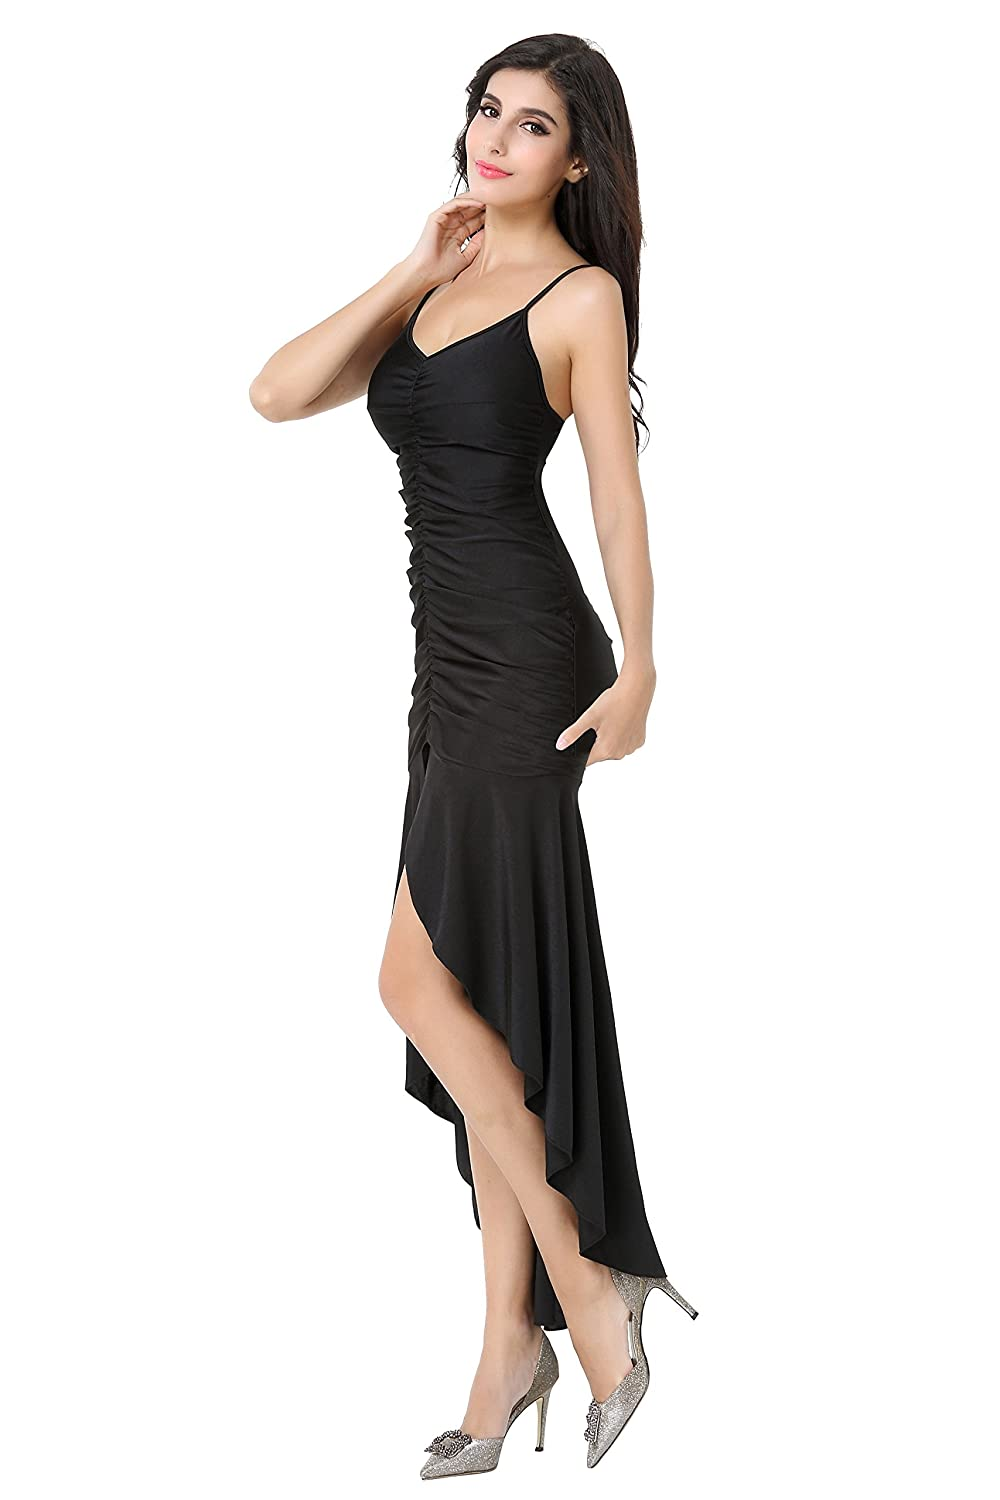 LOVEBEAUTY® Womens Stretchy Ruffle Sleeveless Long Prom Dresses at Amazon Womens Clothing store: